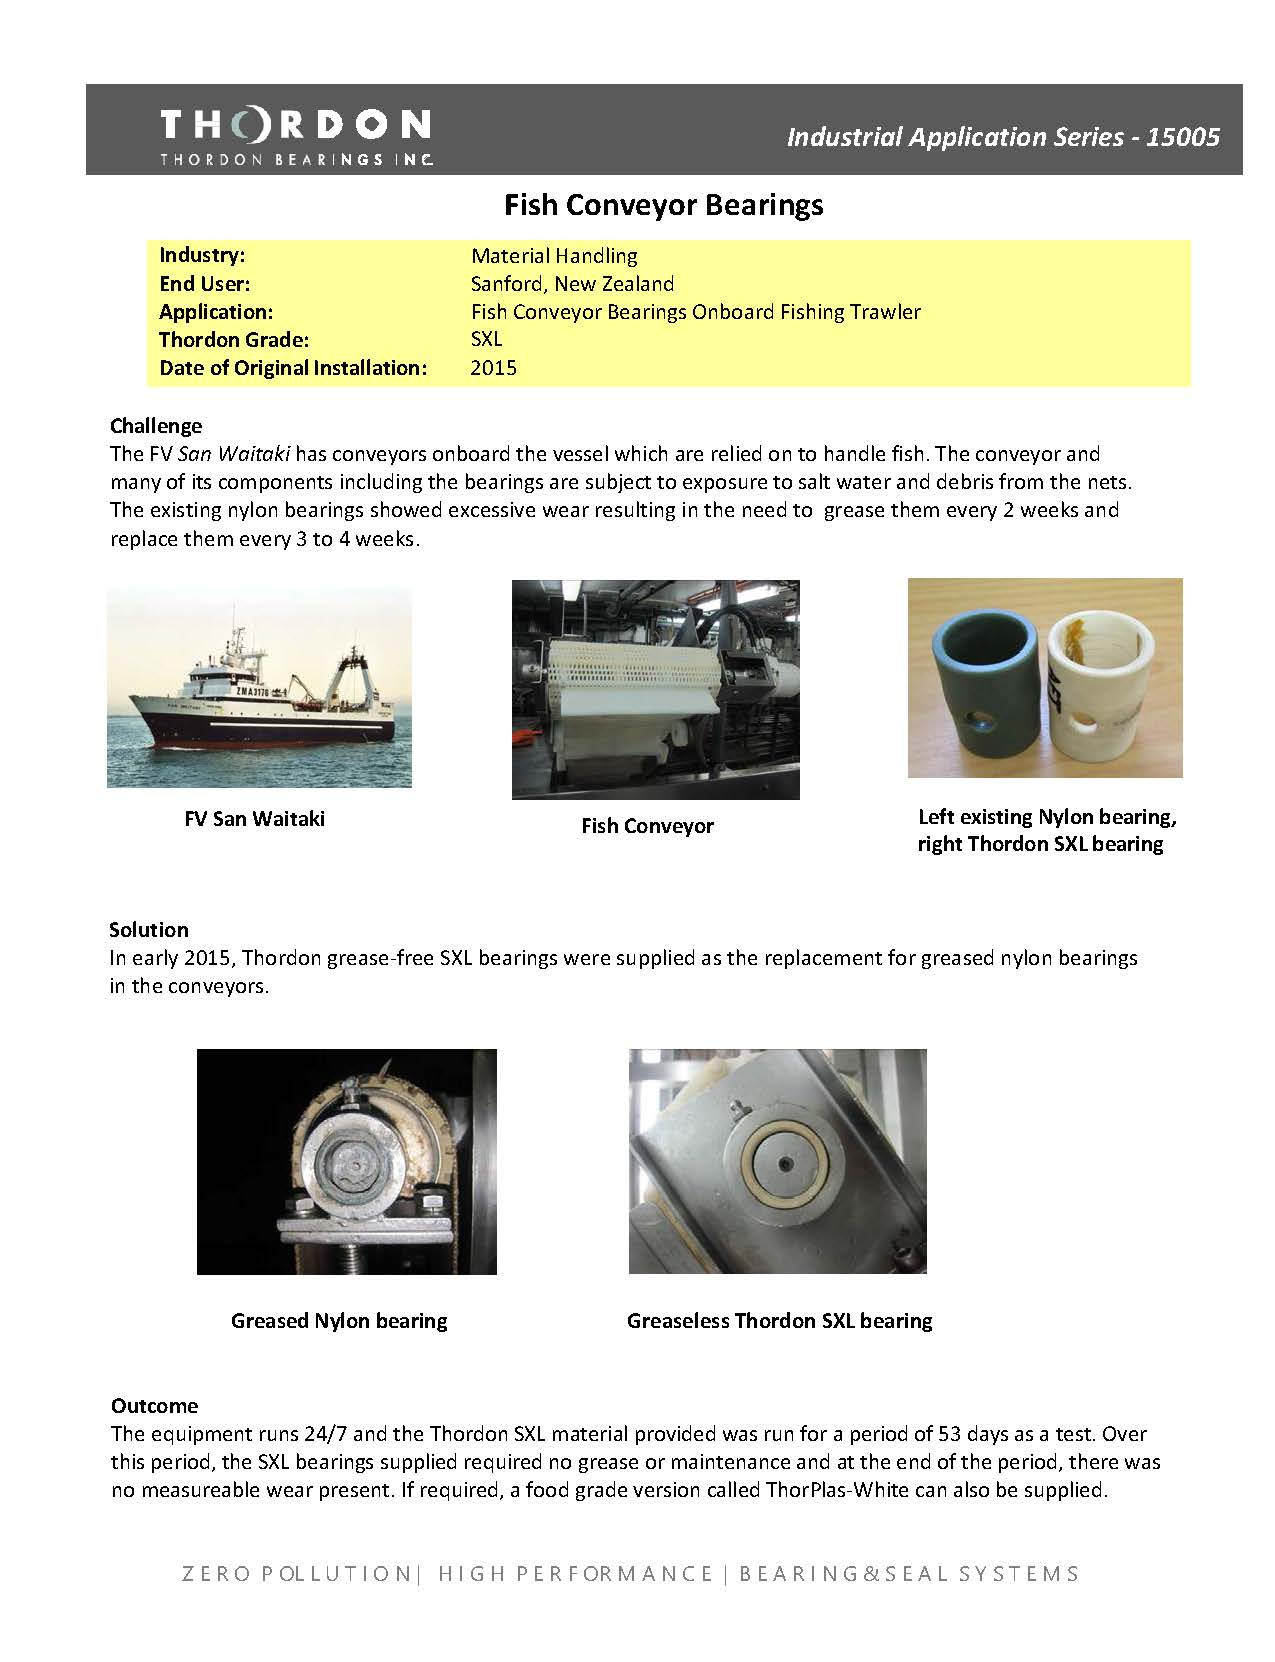 15005- Seafood Conveyor Bearings